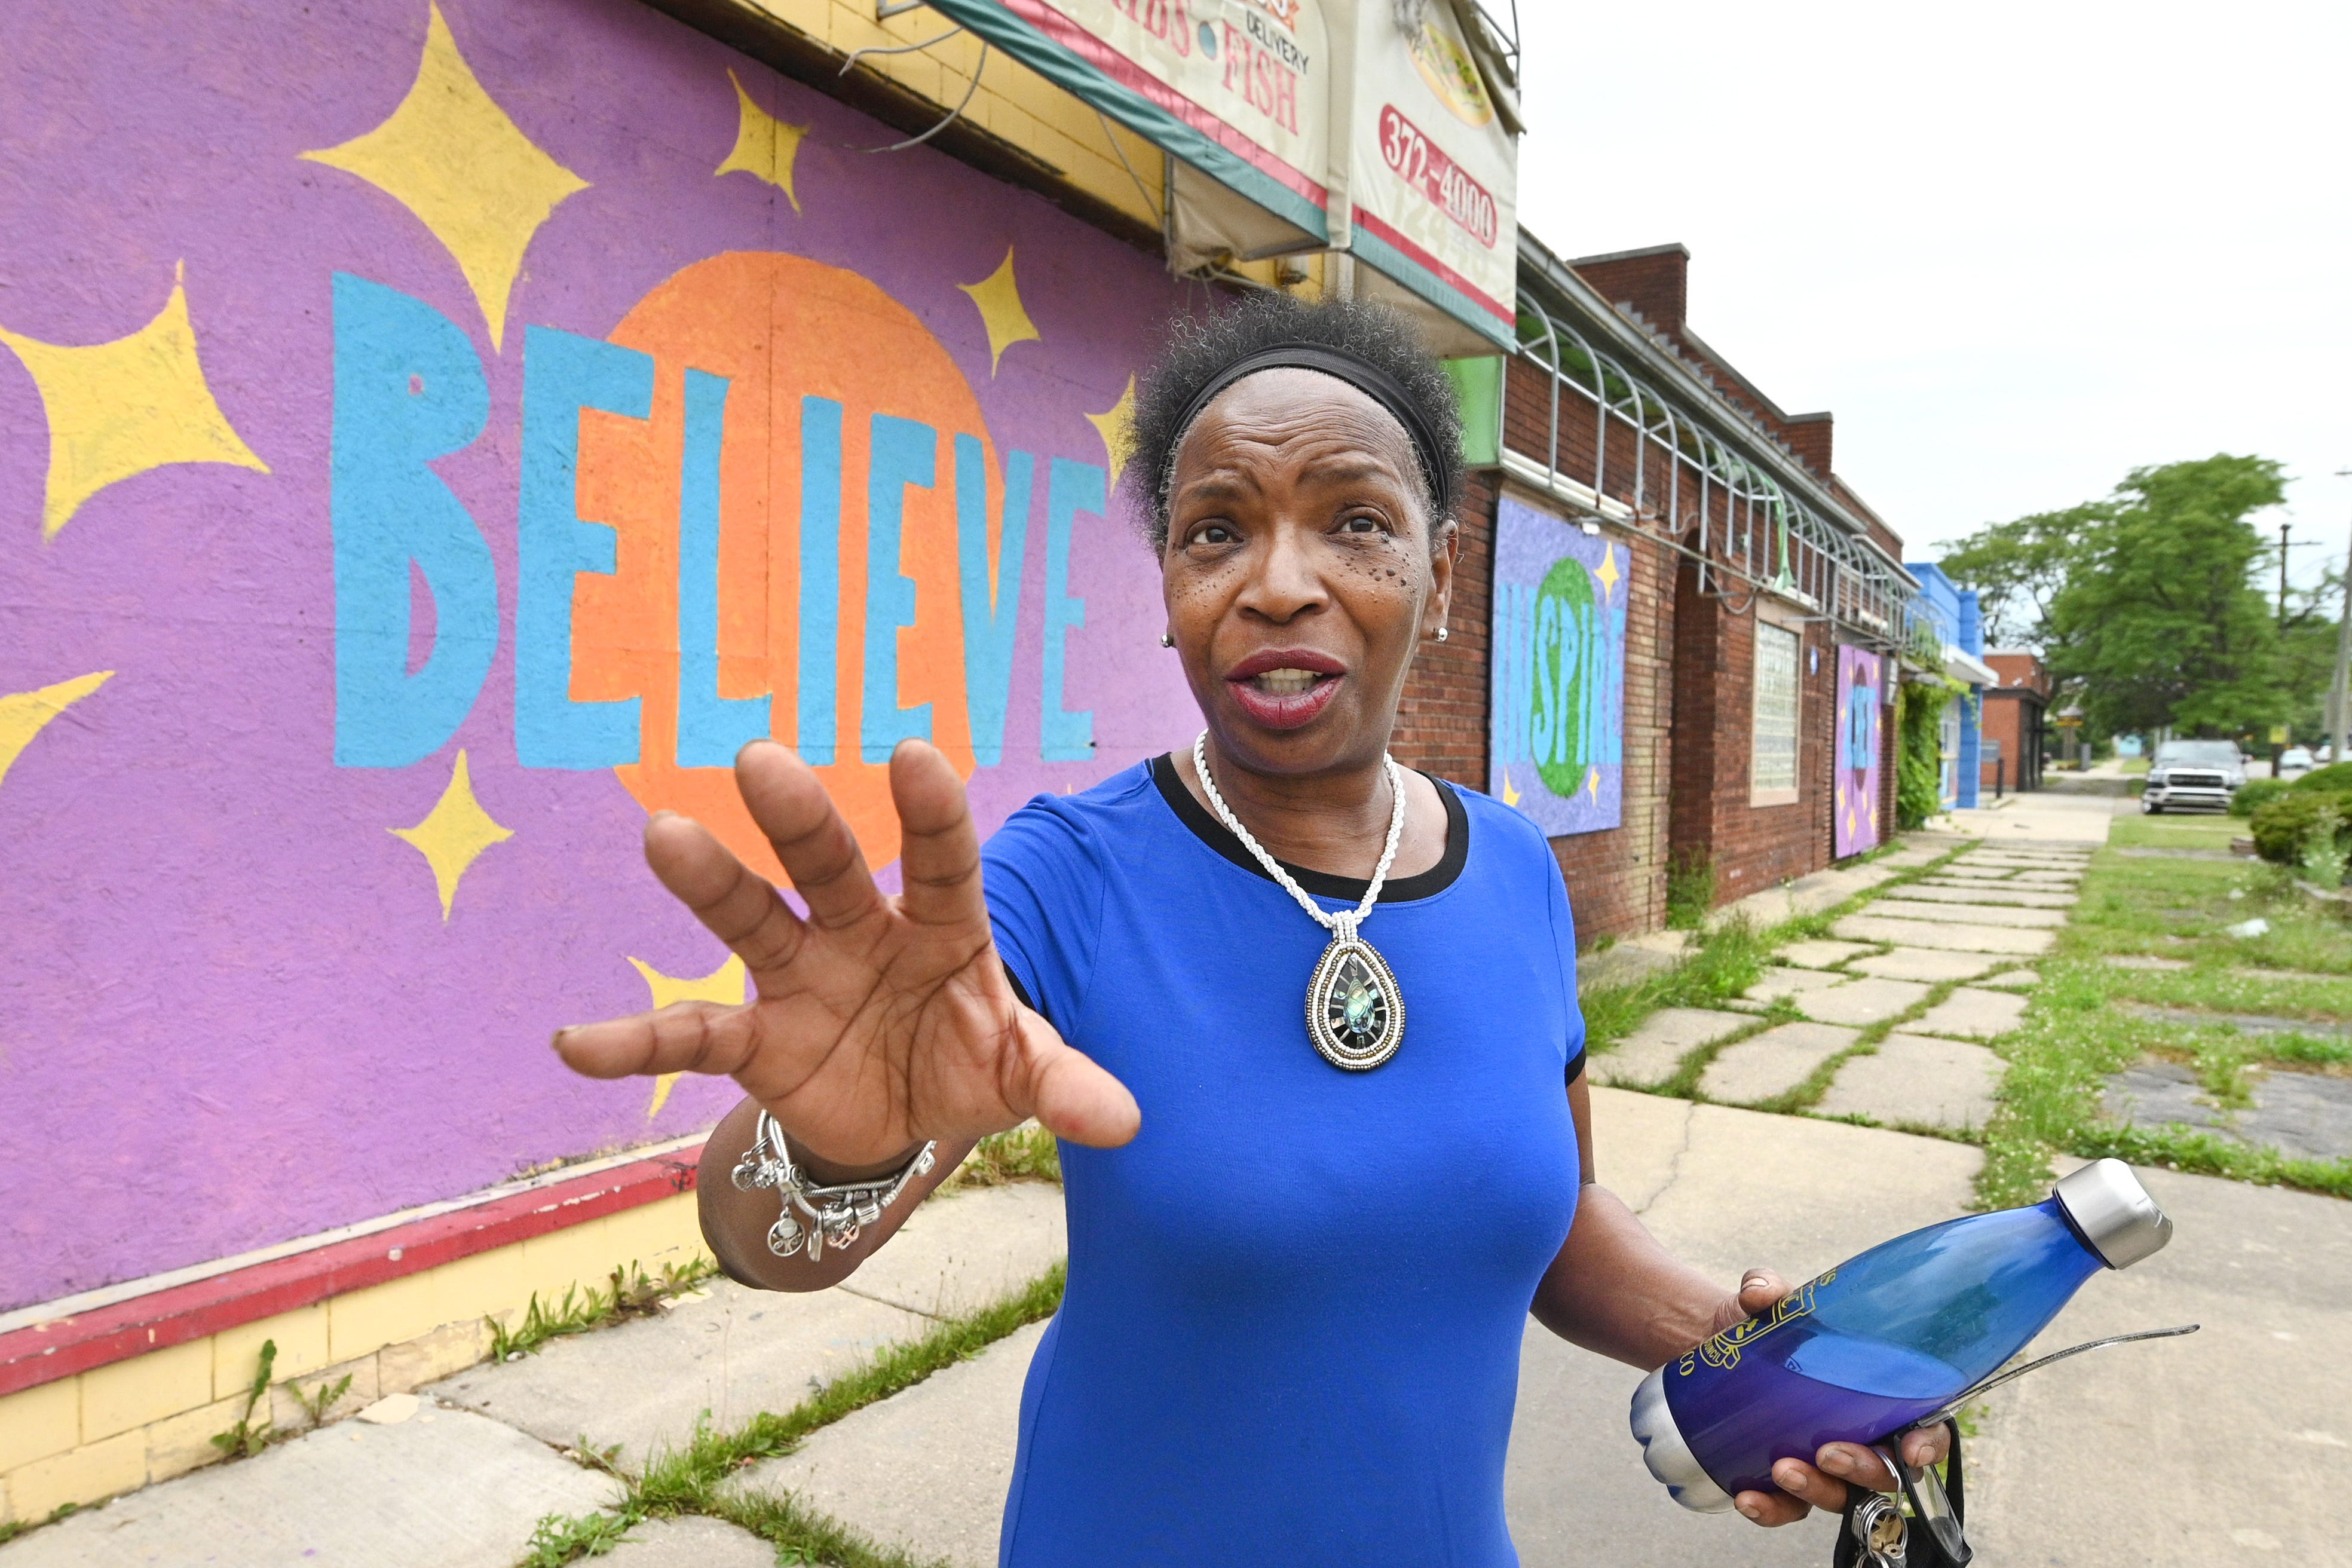 'Resiliency': Gratiot/7 Mile residents hope for rebirth with city initiative